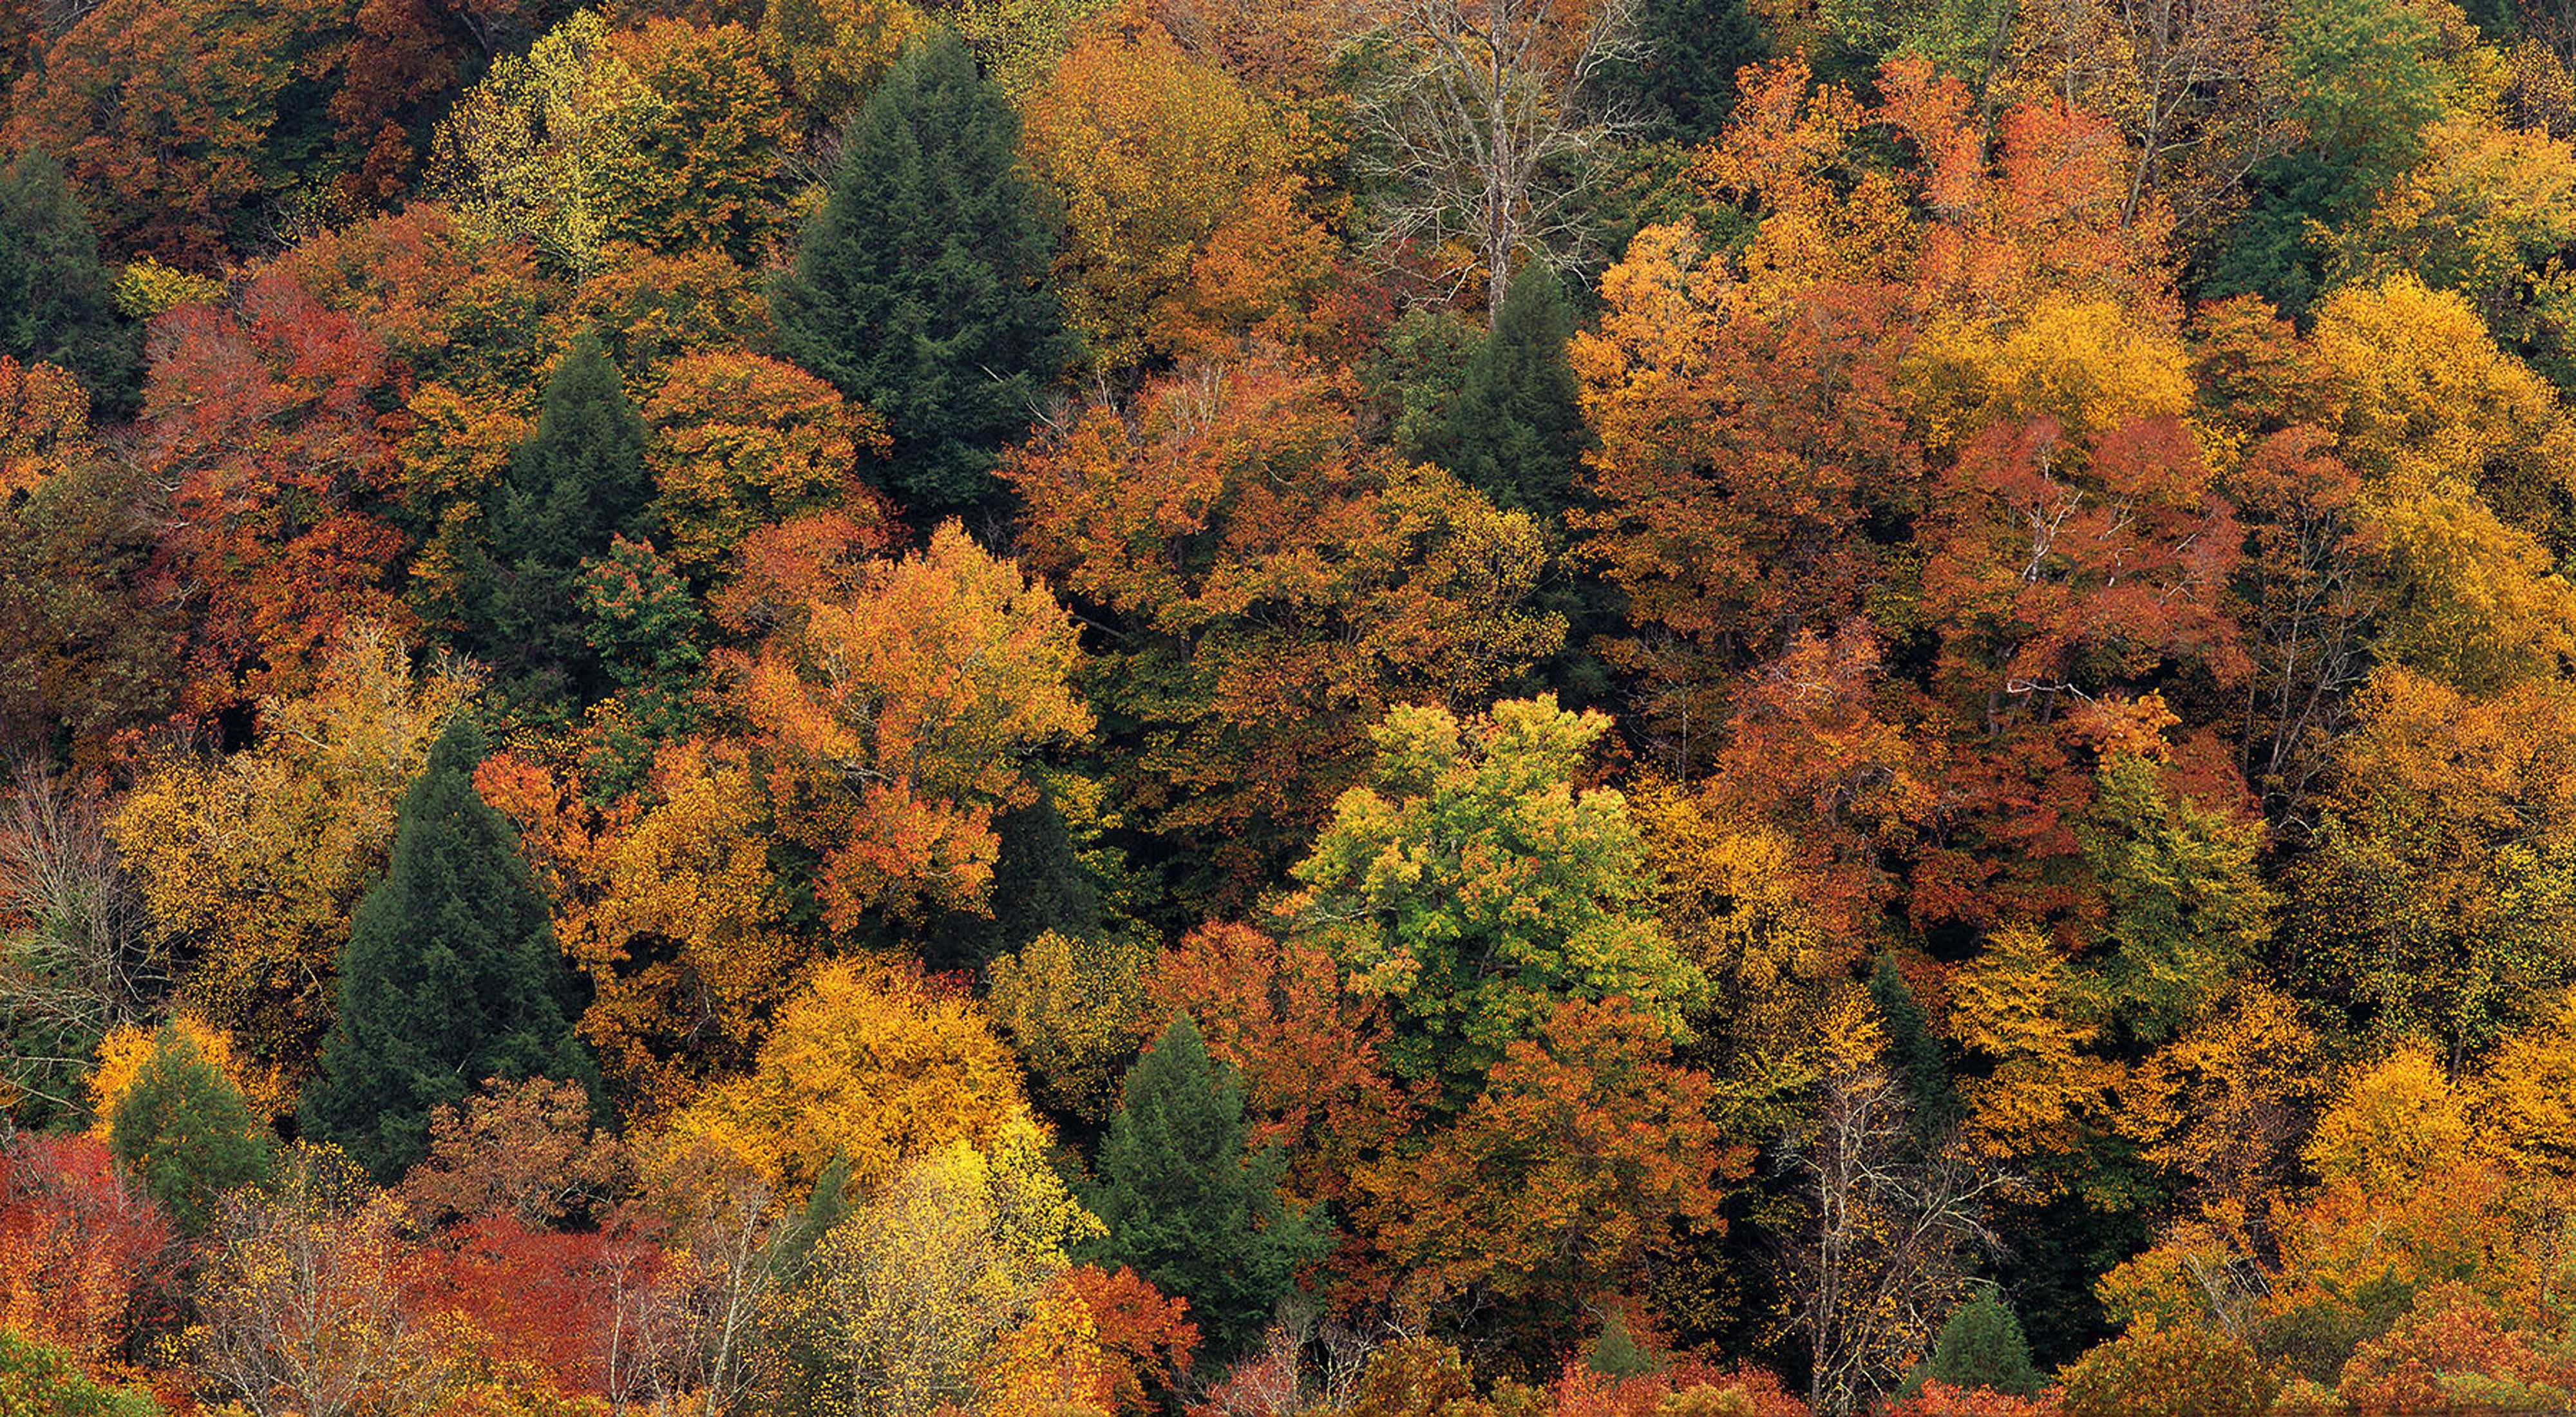 A forest in autumn with trees of various color.